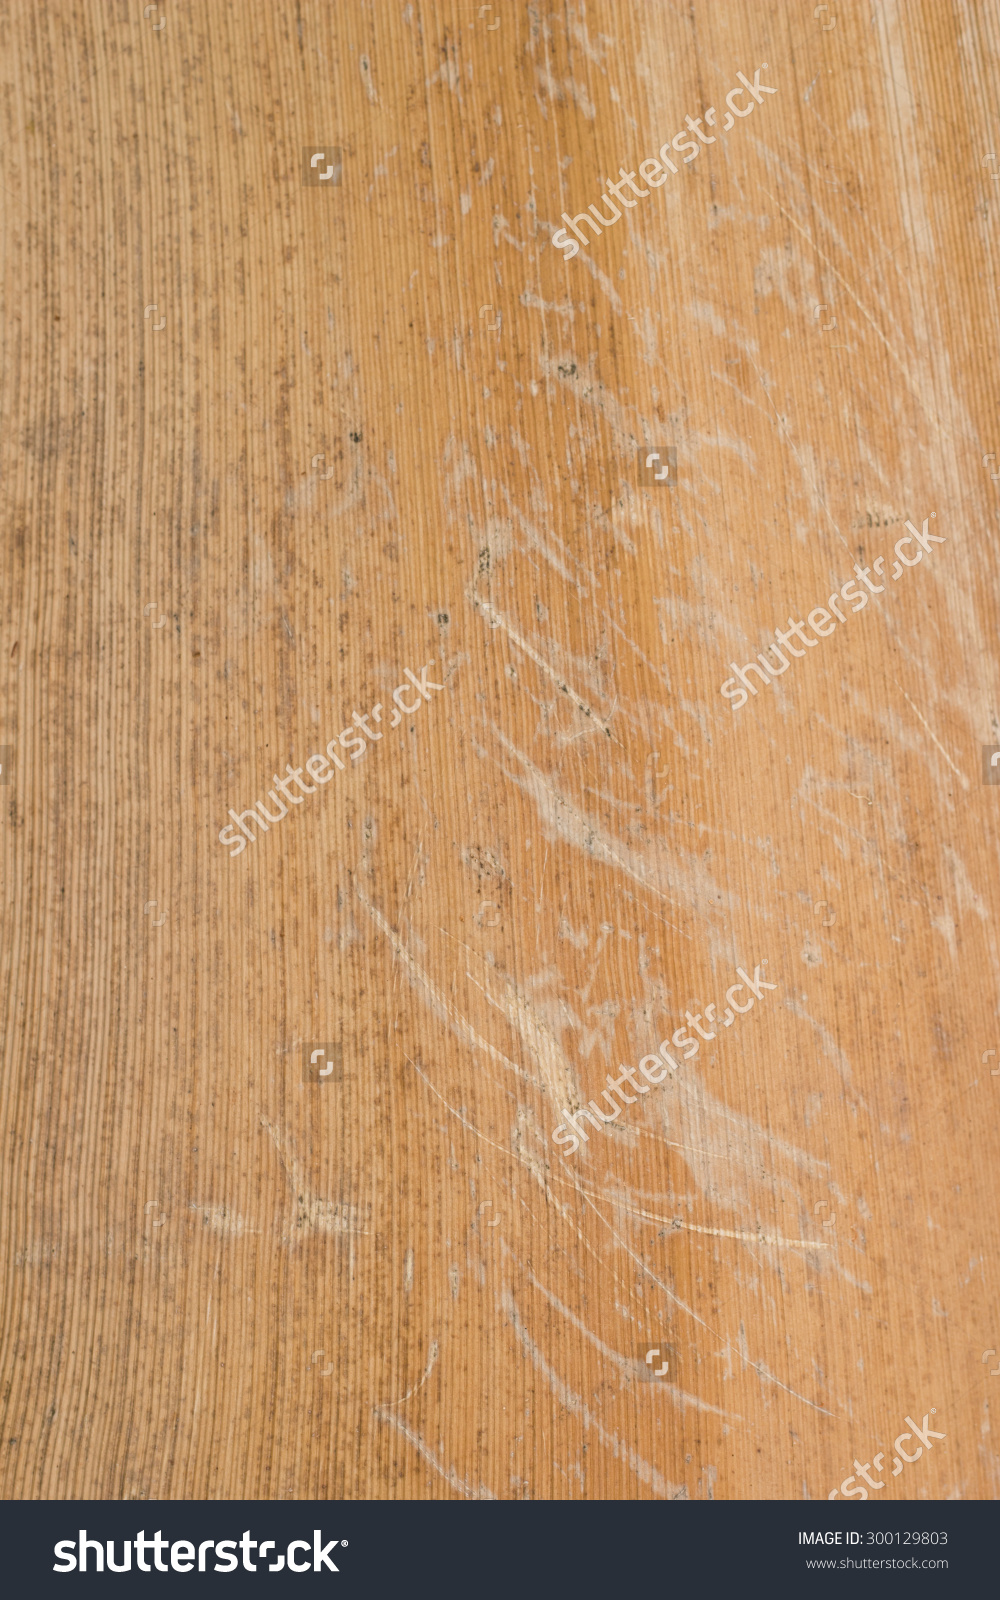 Old Palm Leaf Sheath Background Texture Pattern. Stock Photo.